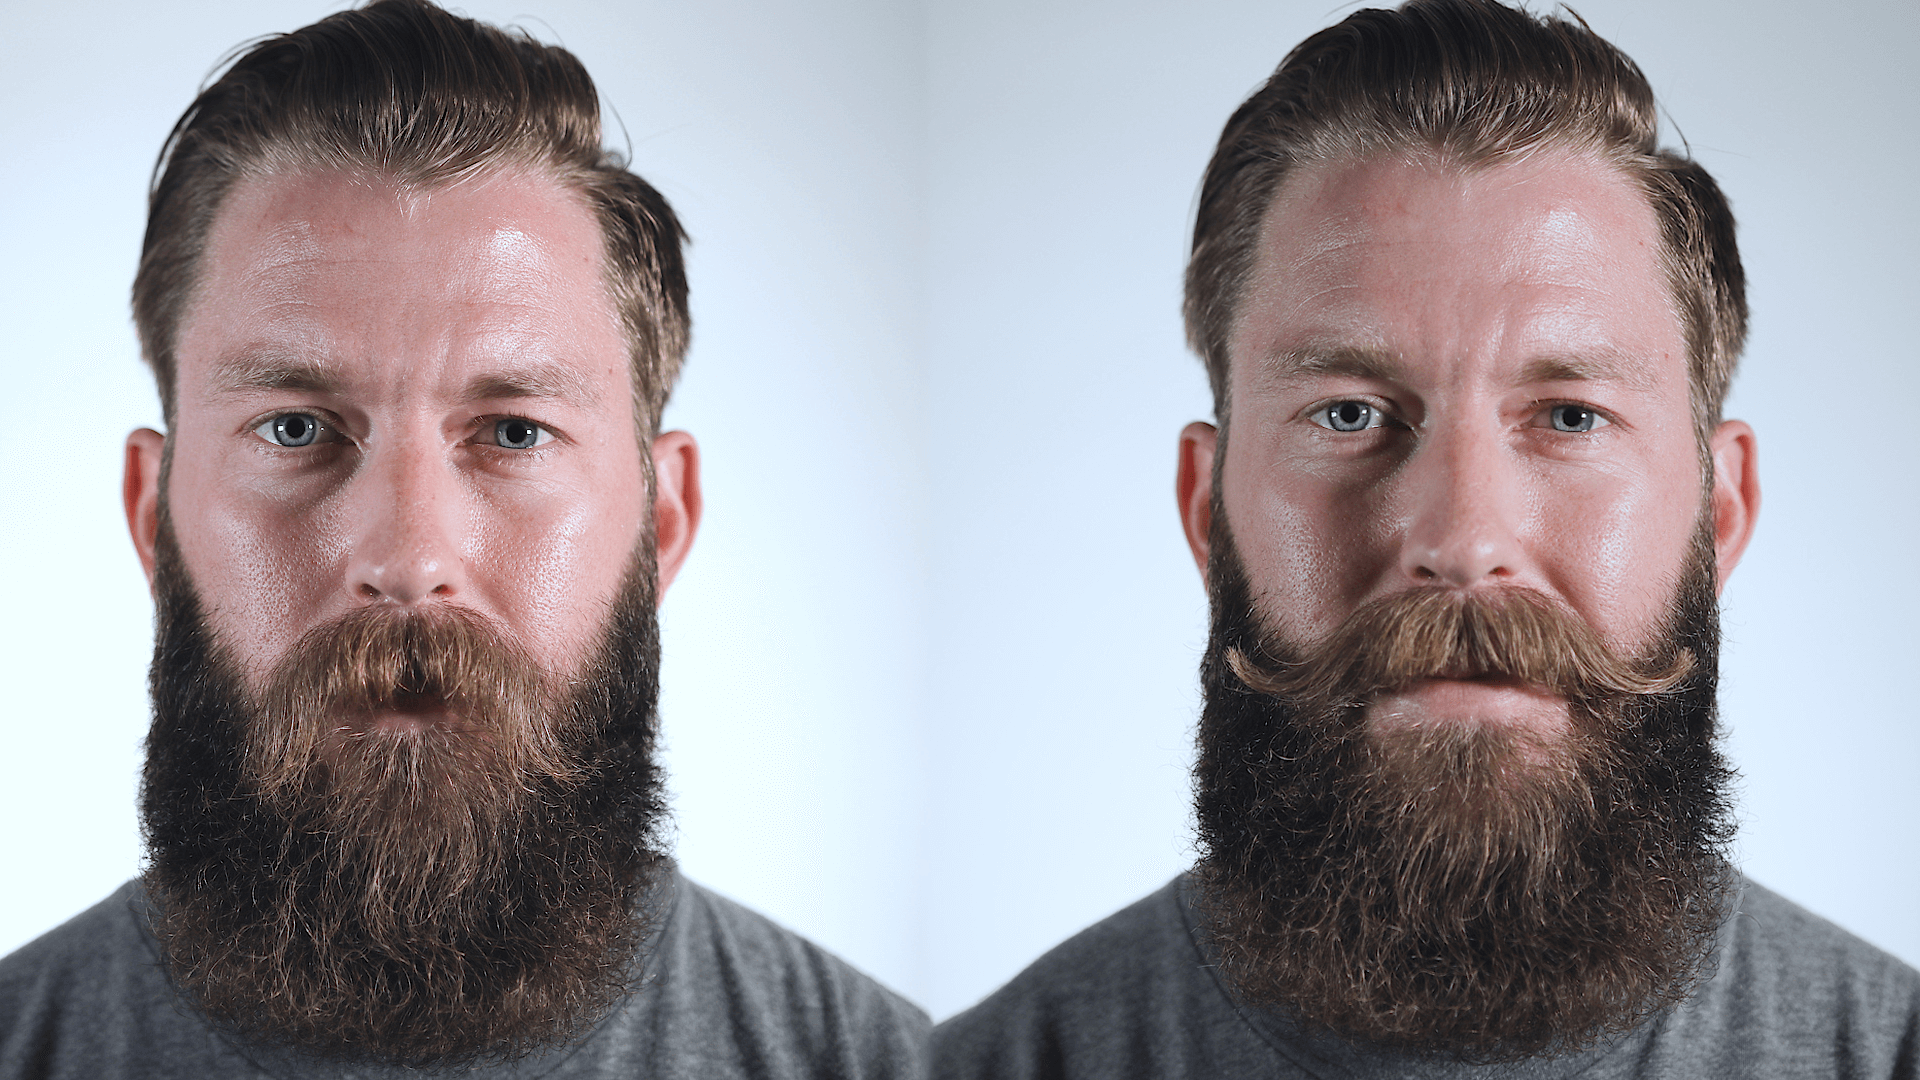 Handlebar Mustache Trimming And Style Advice From A Pro Live Bearded